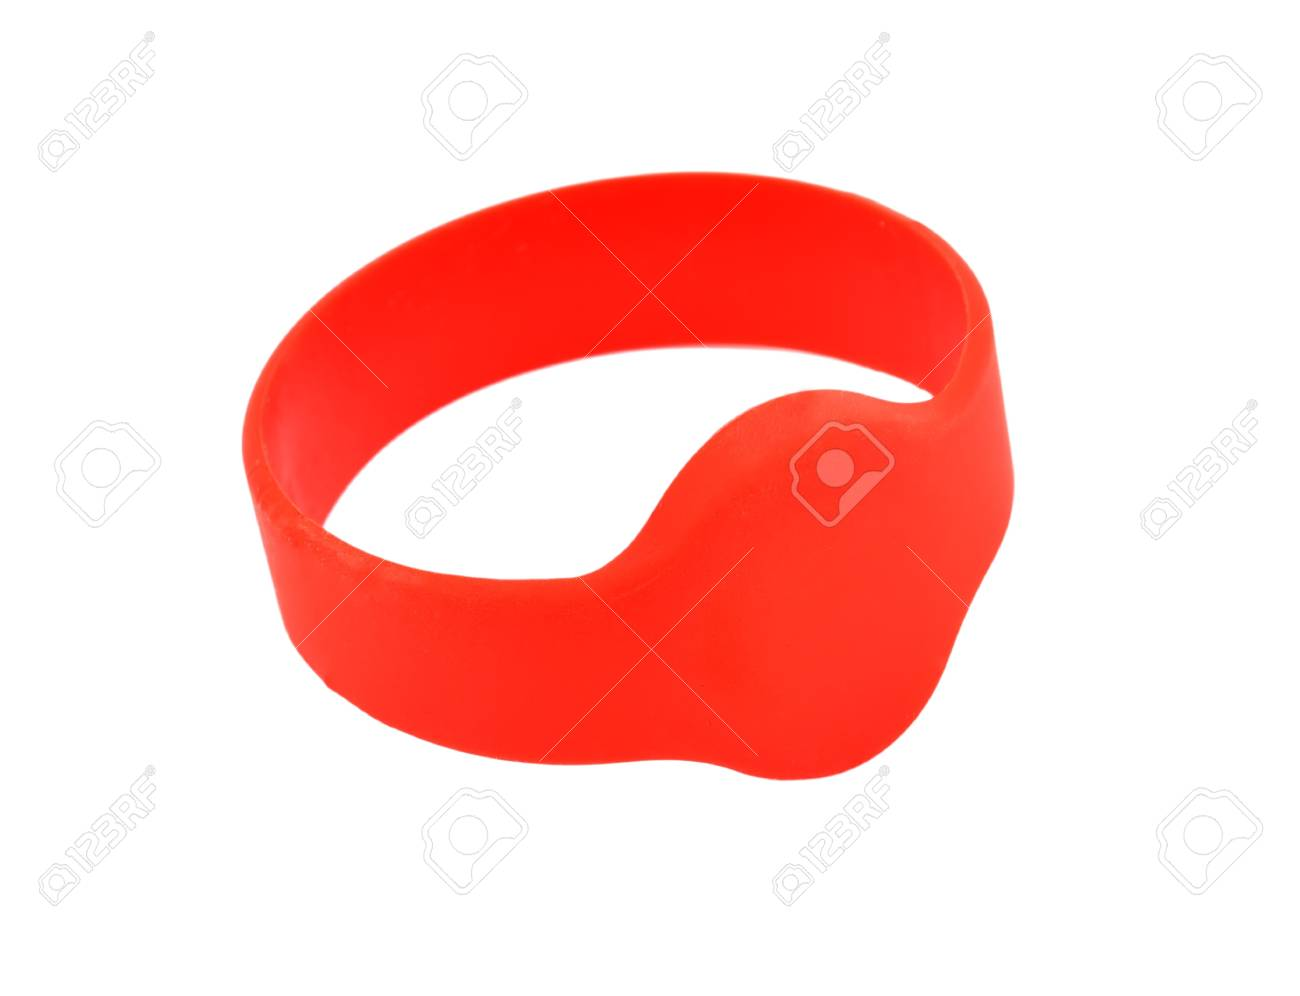 bluelands clipuhfrfidwristbands clip silicone bracelet shenzhen uhf buckle wristbands rfid and